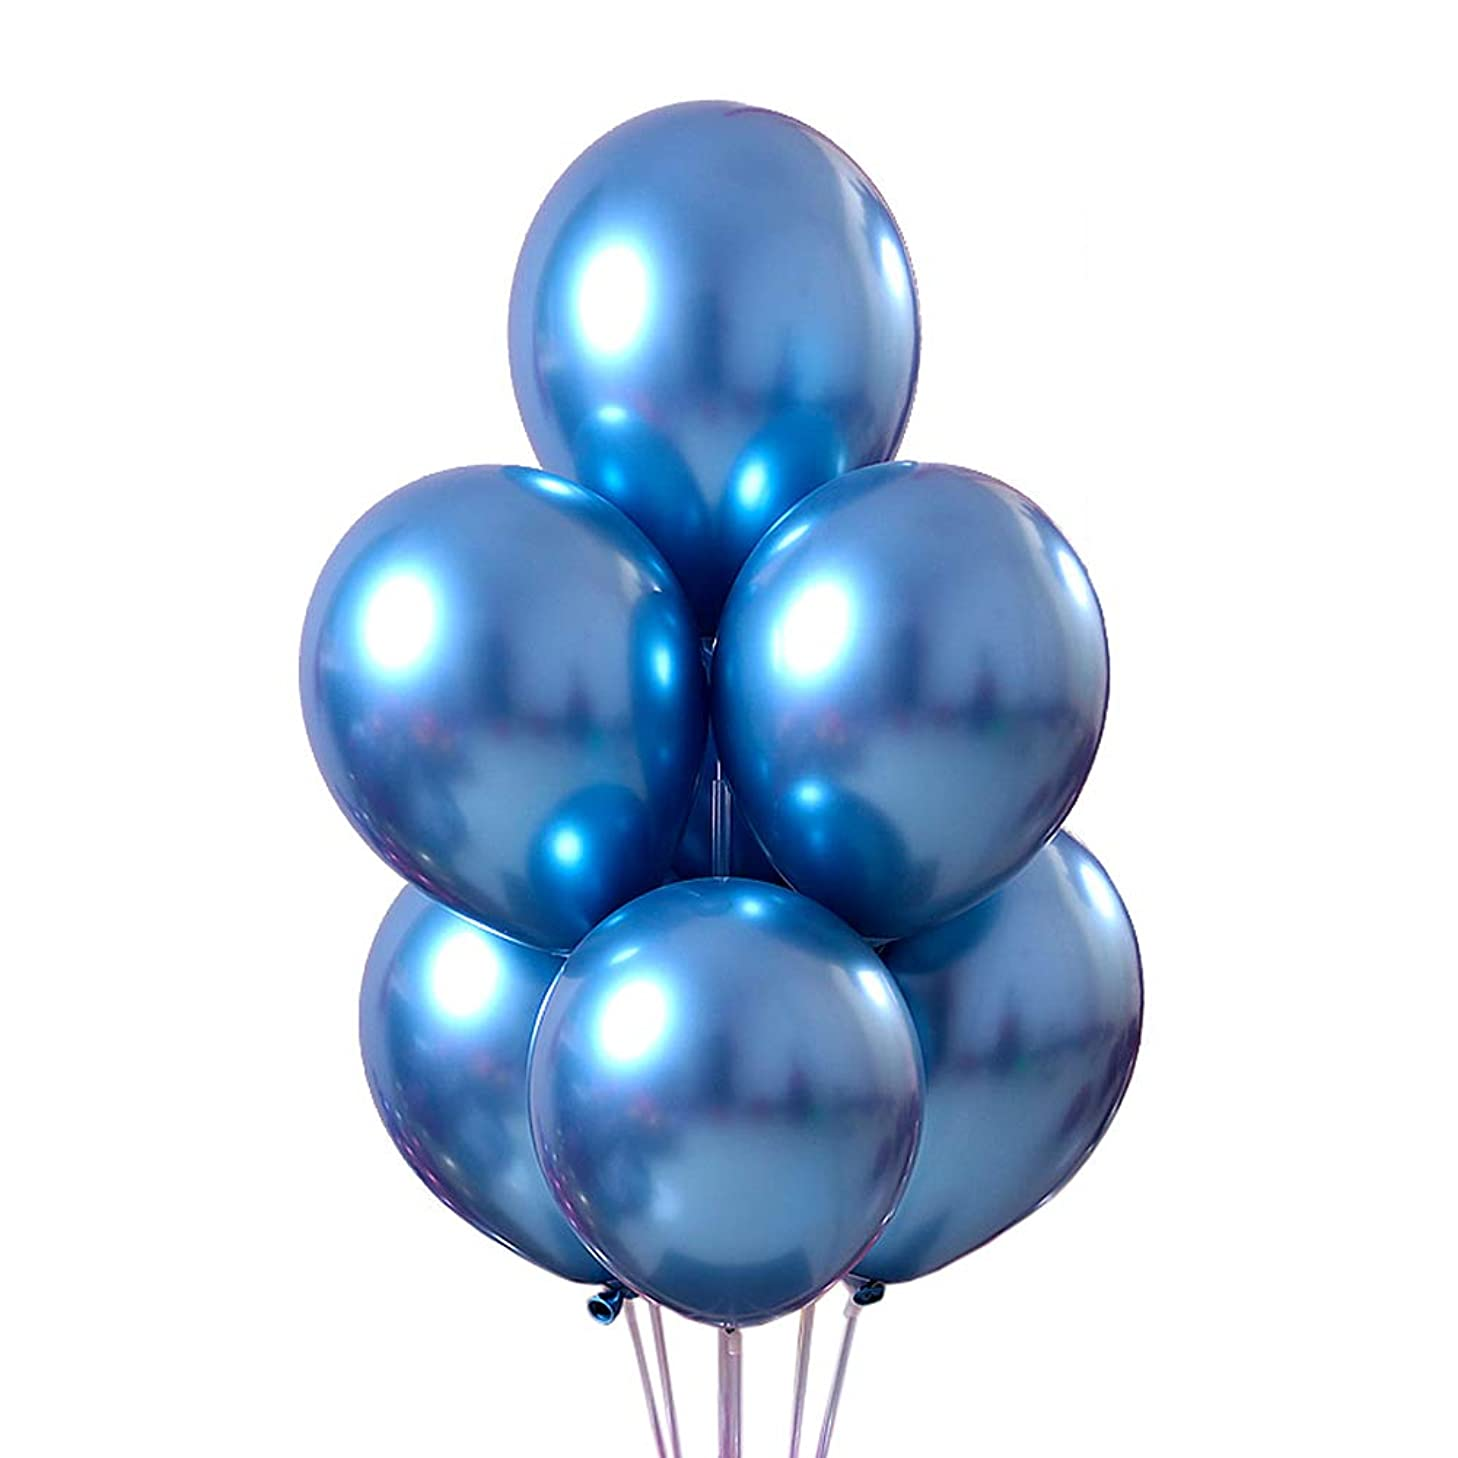 Juland 50 PCS Metallic Party Balloons 12'' Glossy Metal Pearl Latex Balloons Thick Pearly Chrome Alloy Inflatable Air Balloons for Birthdays, Bridal Shower – Blue